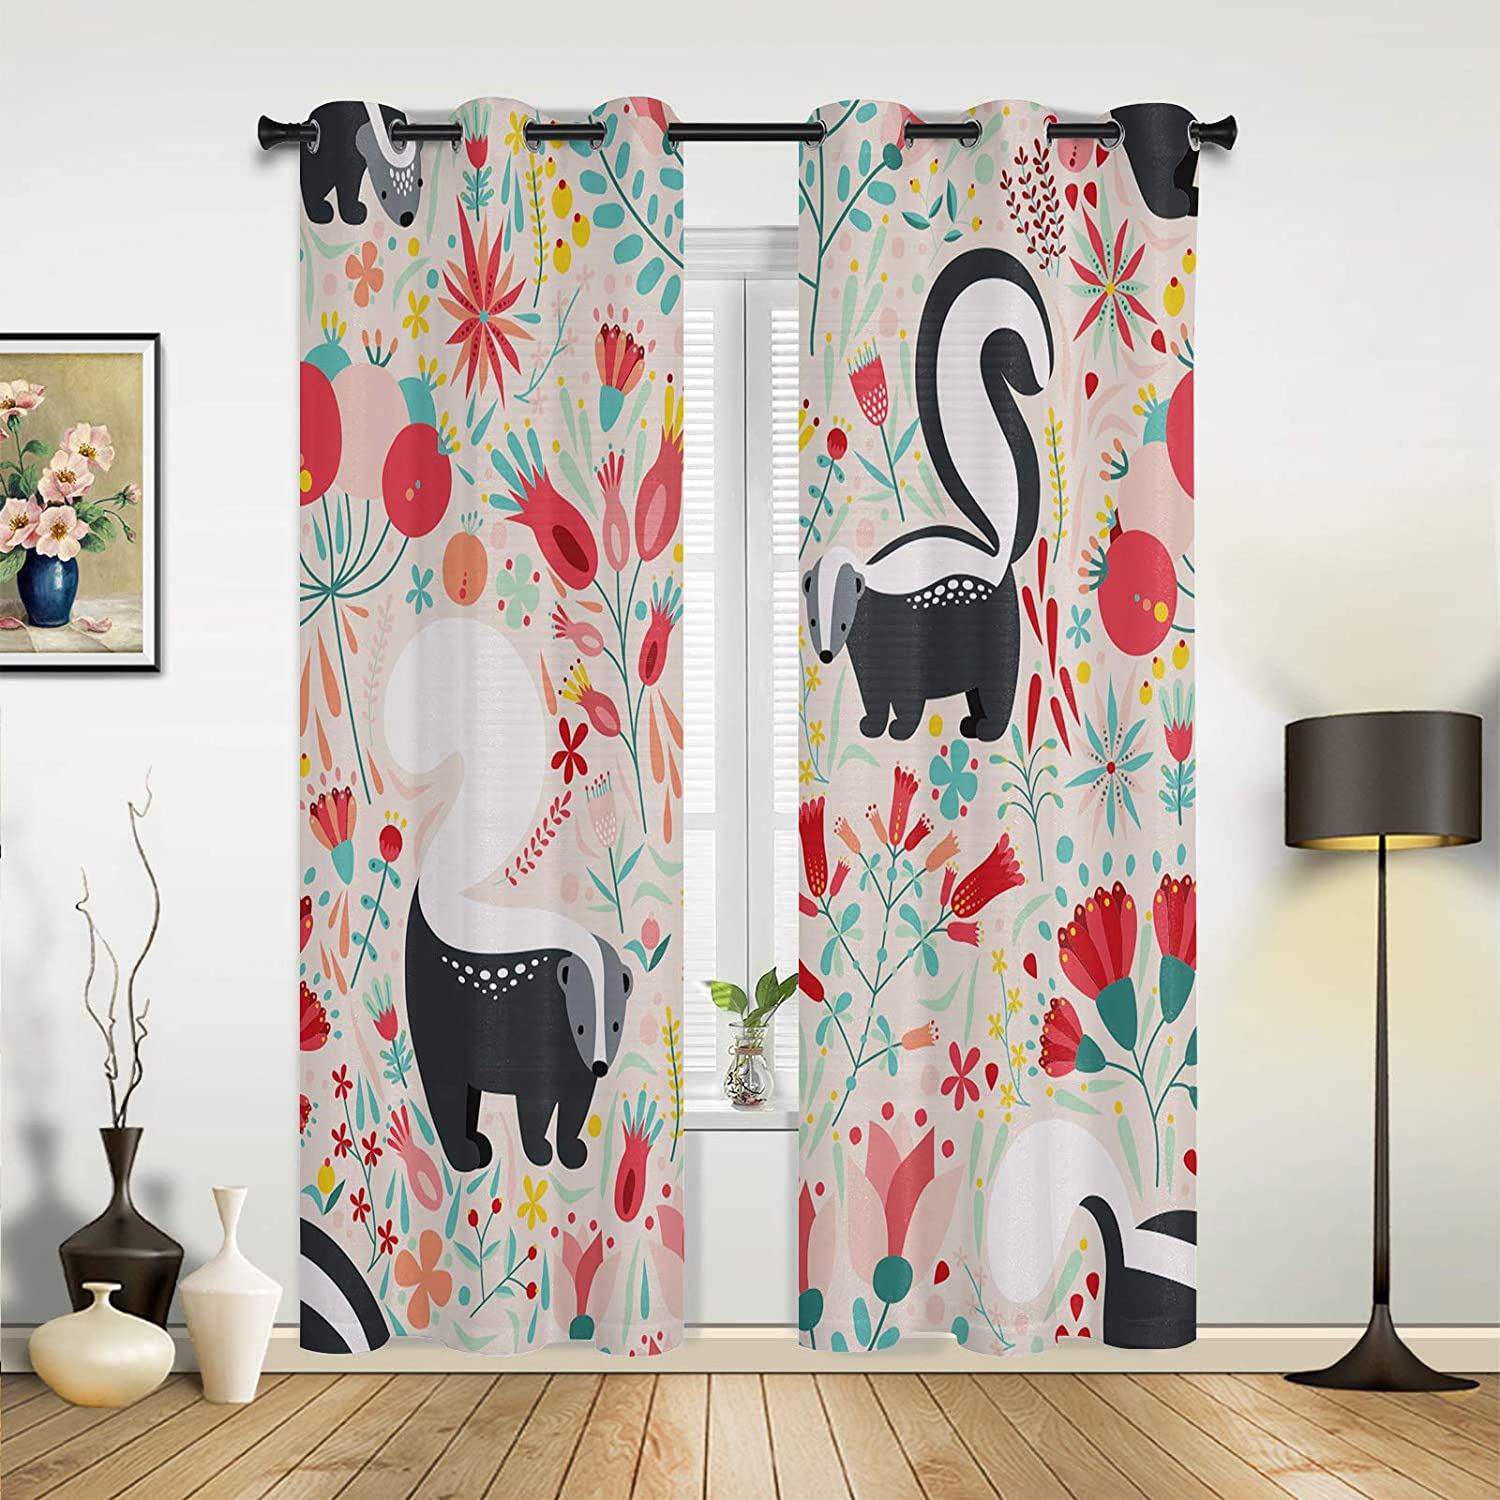 Window Curtains Popular brand in the world Drapes Panels Funny Skunk Pink Spring Flowers 5 popular